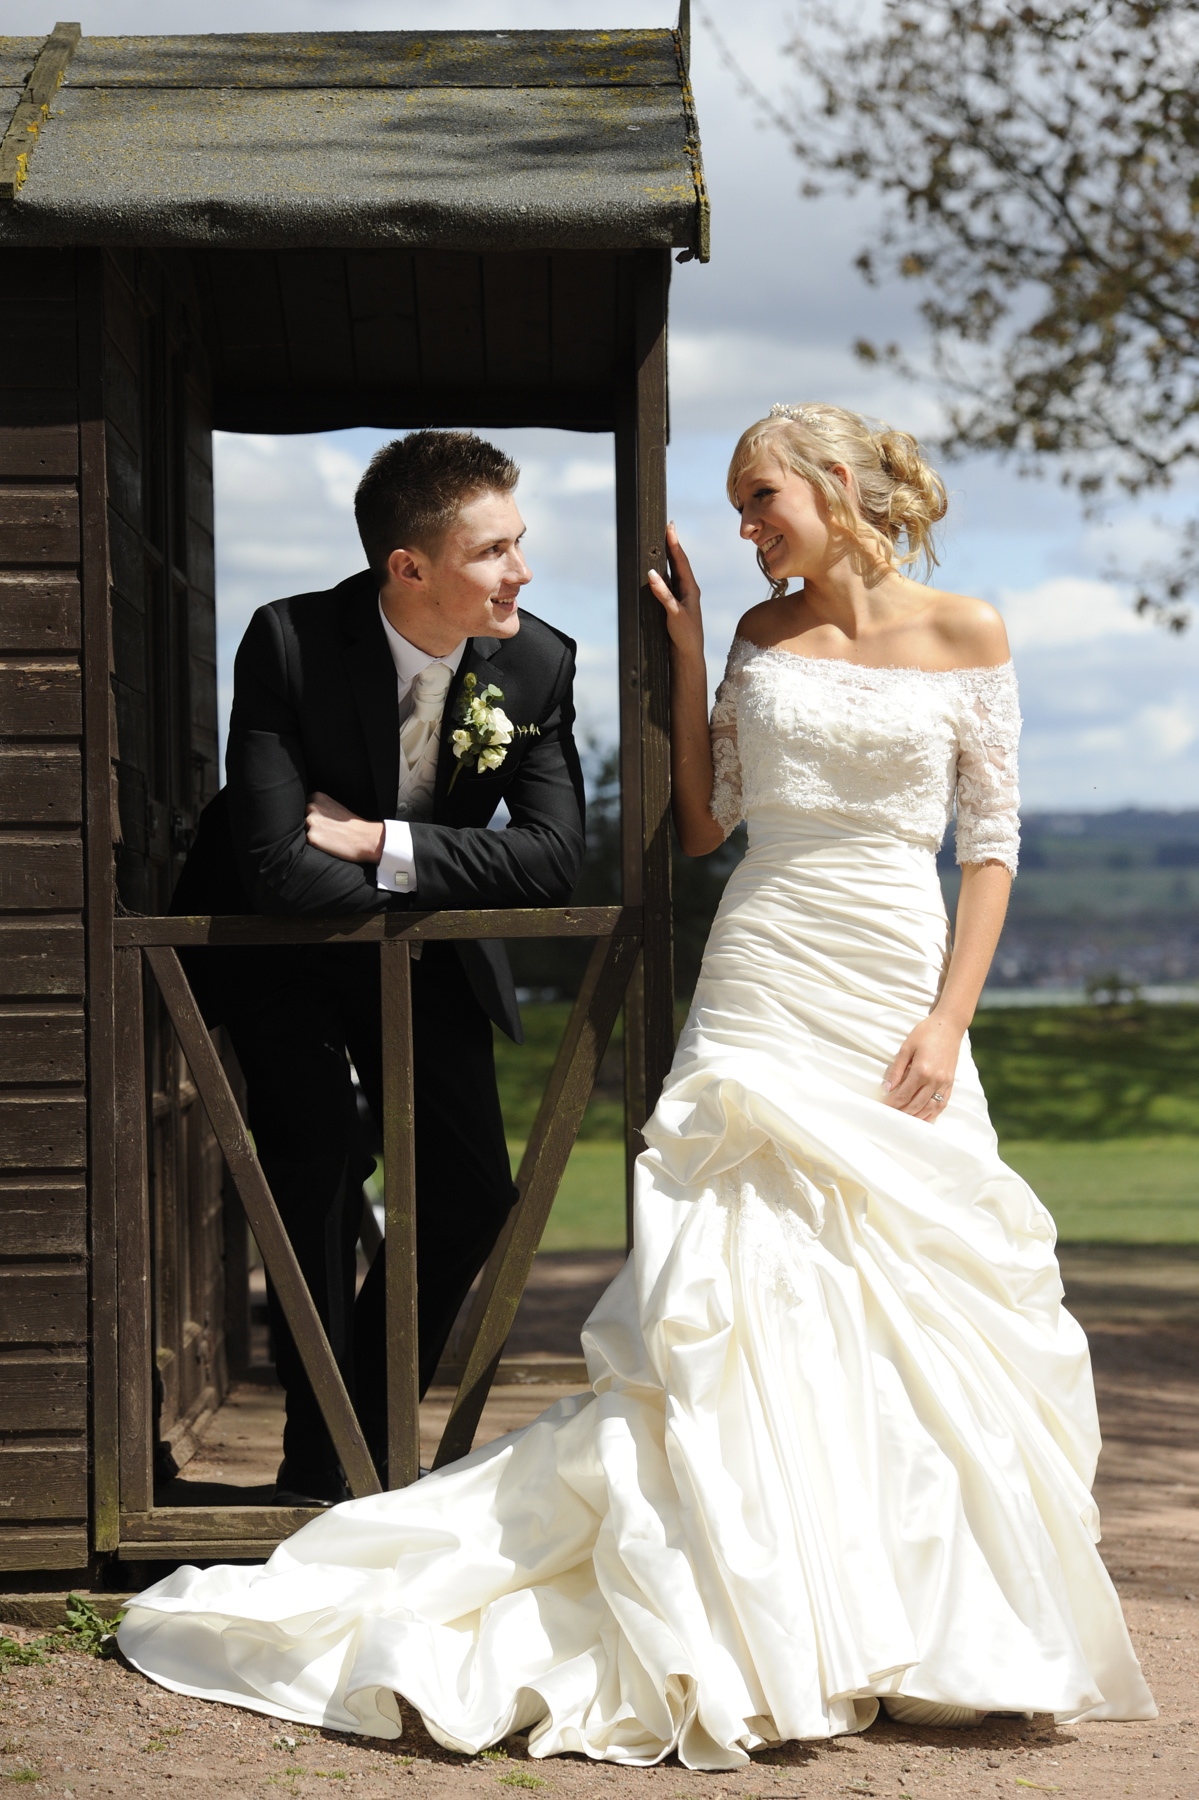 James & Natalie wedding photographs Staffordshire